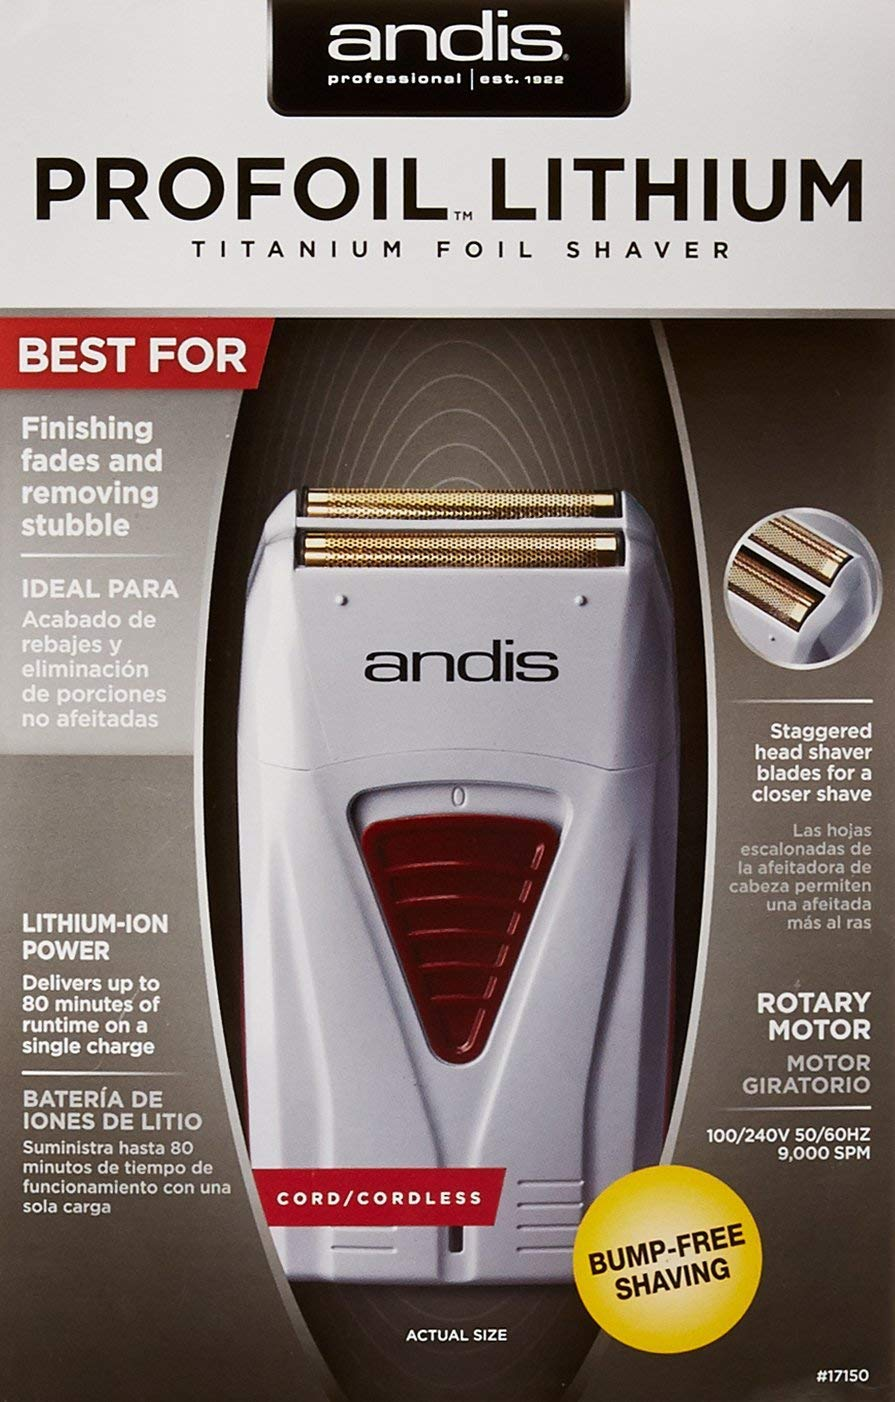 Amazon.com: Andis 17150 Profoil Lithium Shaver & Andis Experience Cordless T Trimmer: Beauty